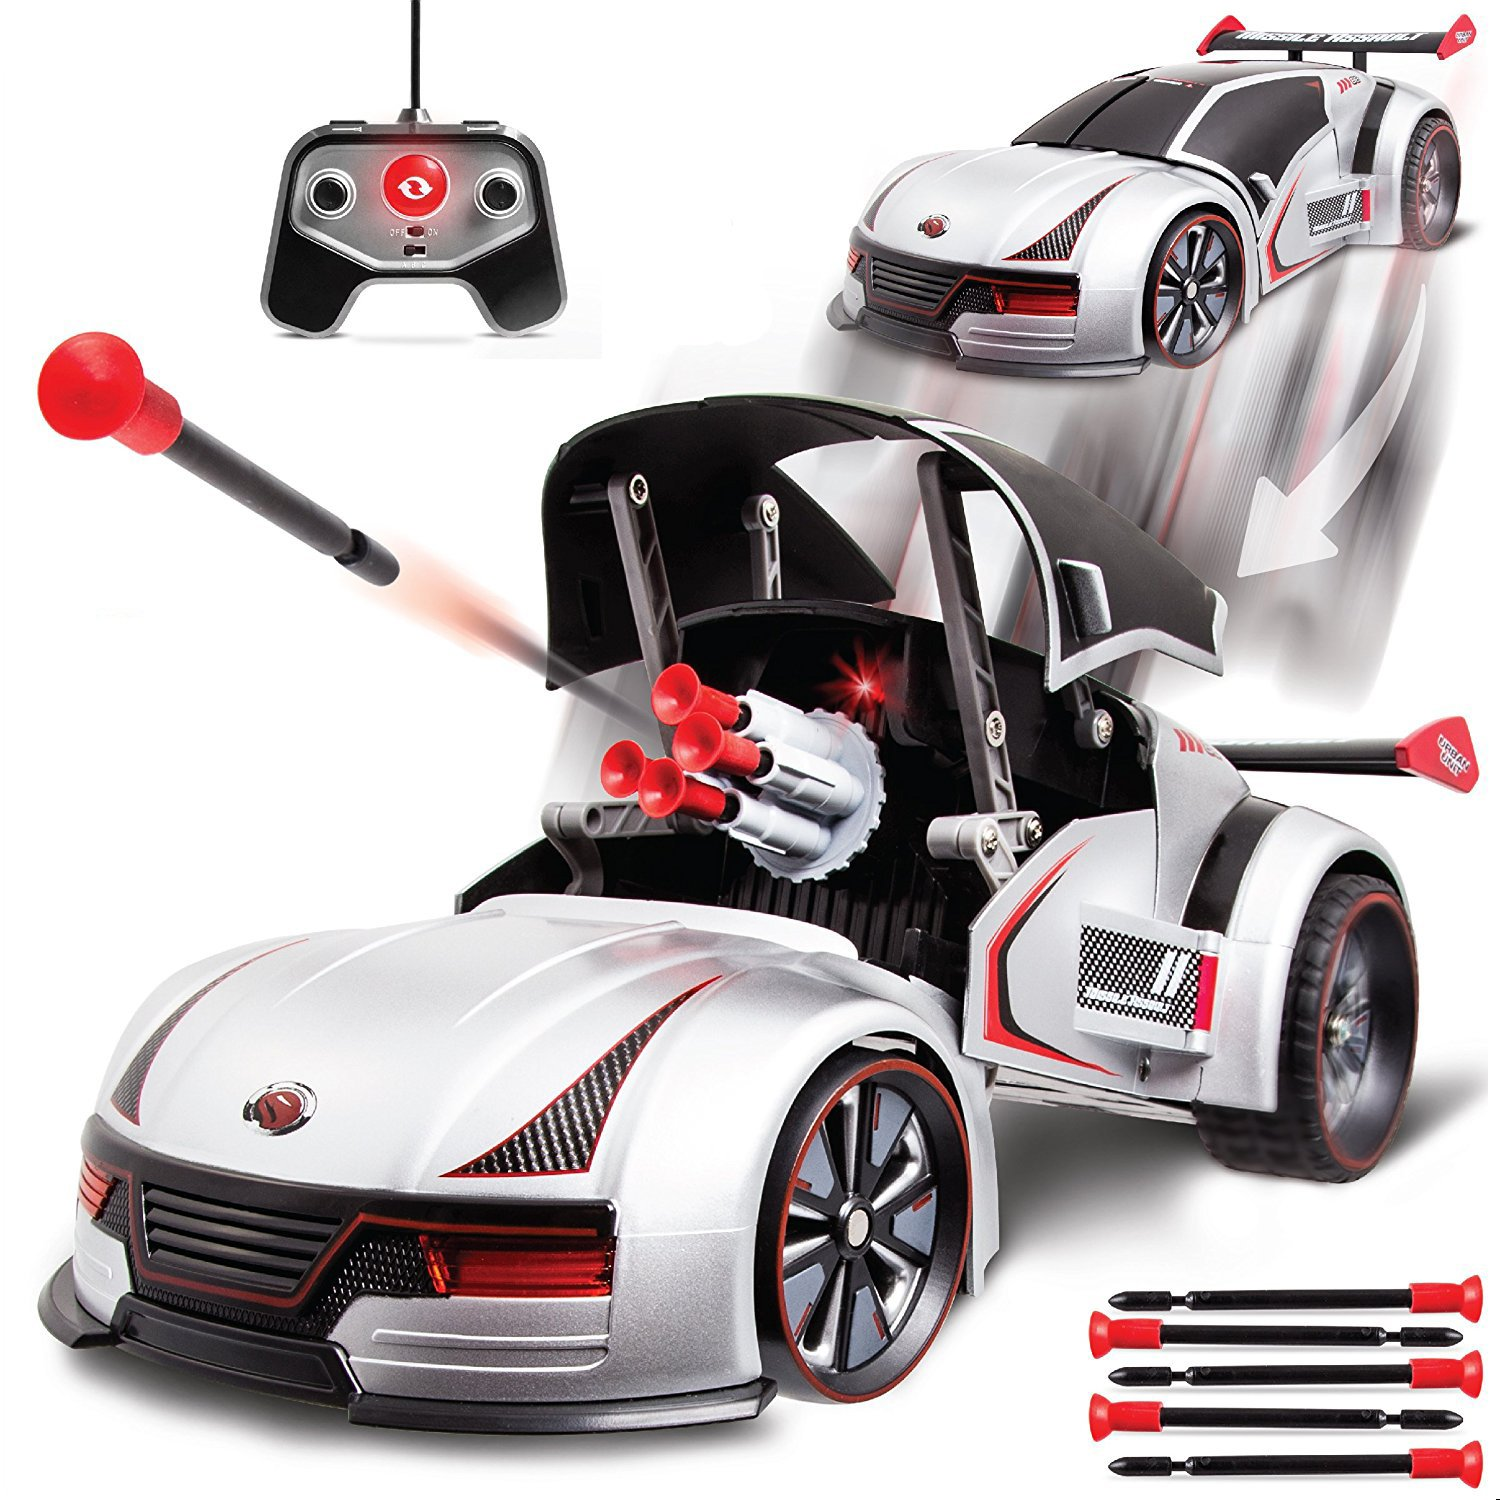 Sharper Image Transforming RC Missile Launcher Race Car Battle Toy with LED Target Light, Spoiler; Includes Ten Safe Suction Cup Firing Darts, Remote Control w/ Transformer Button